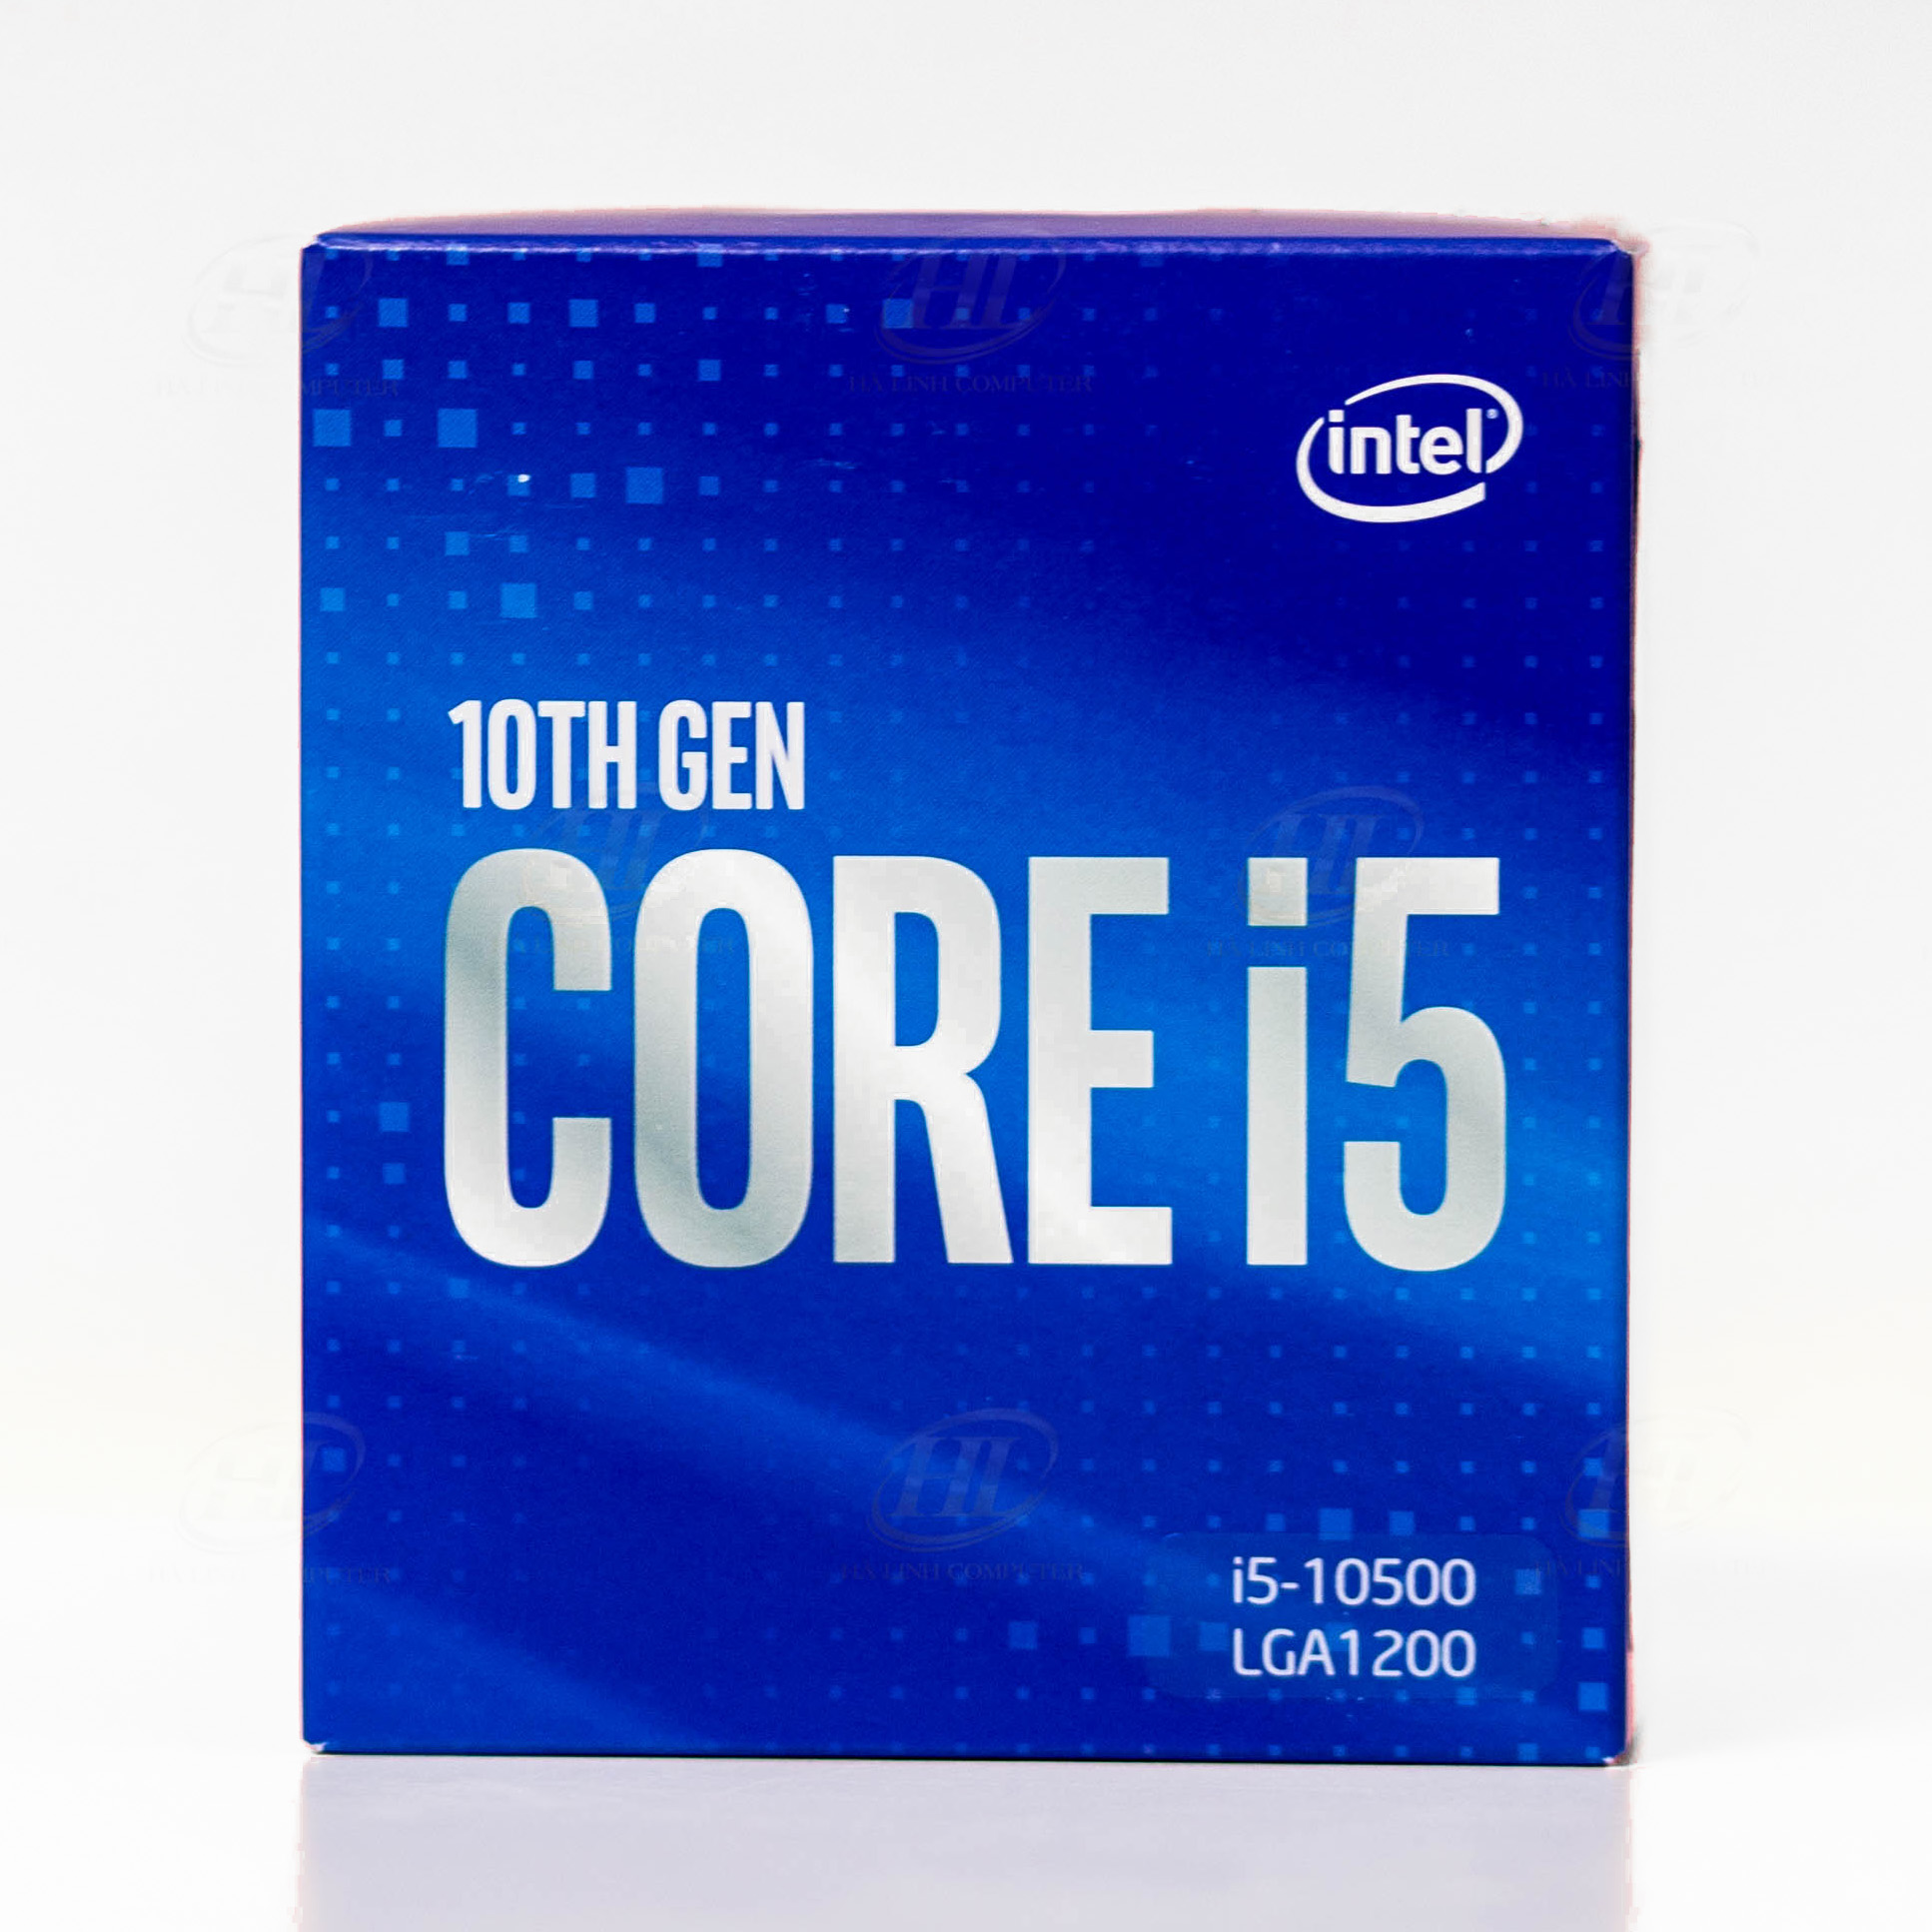 CPU Intel Core i5 10500 (3.1GHz turbo up to 4.5GHz, 6 nhân 12 luồng, 12MB Cache, 65W)